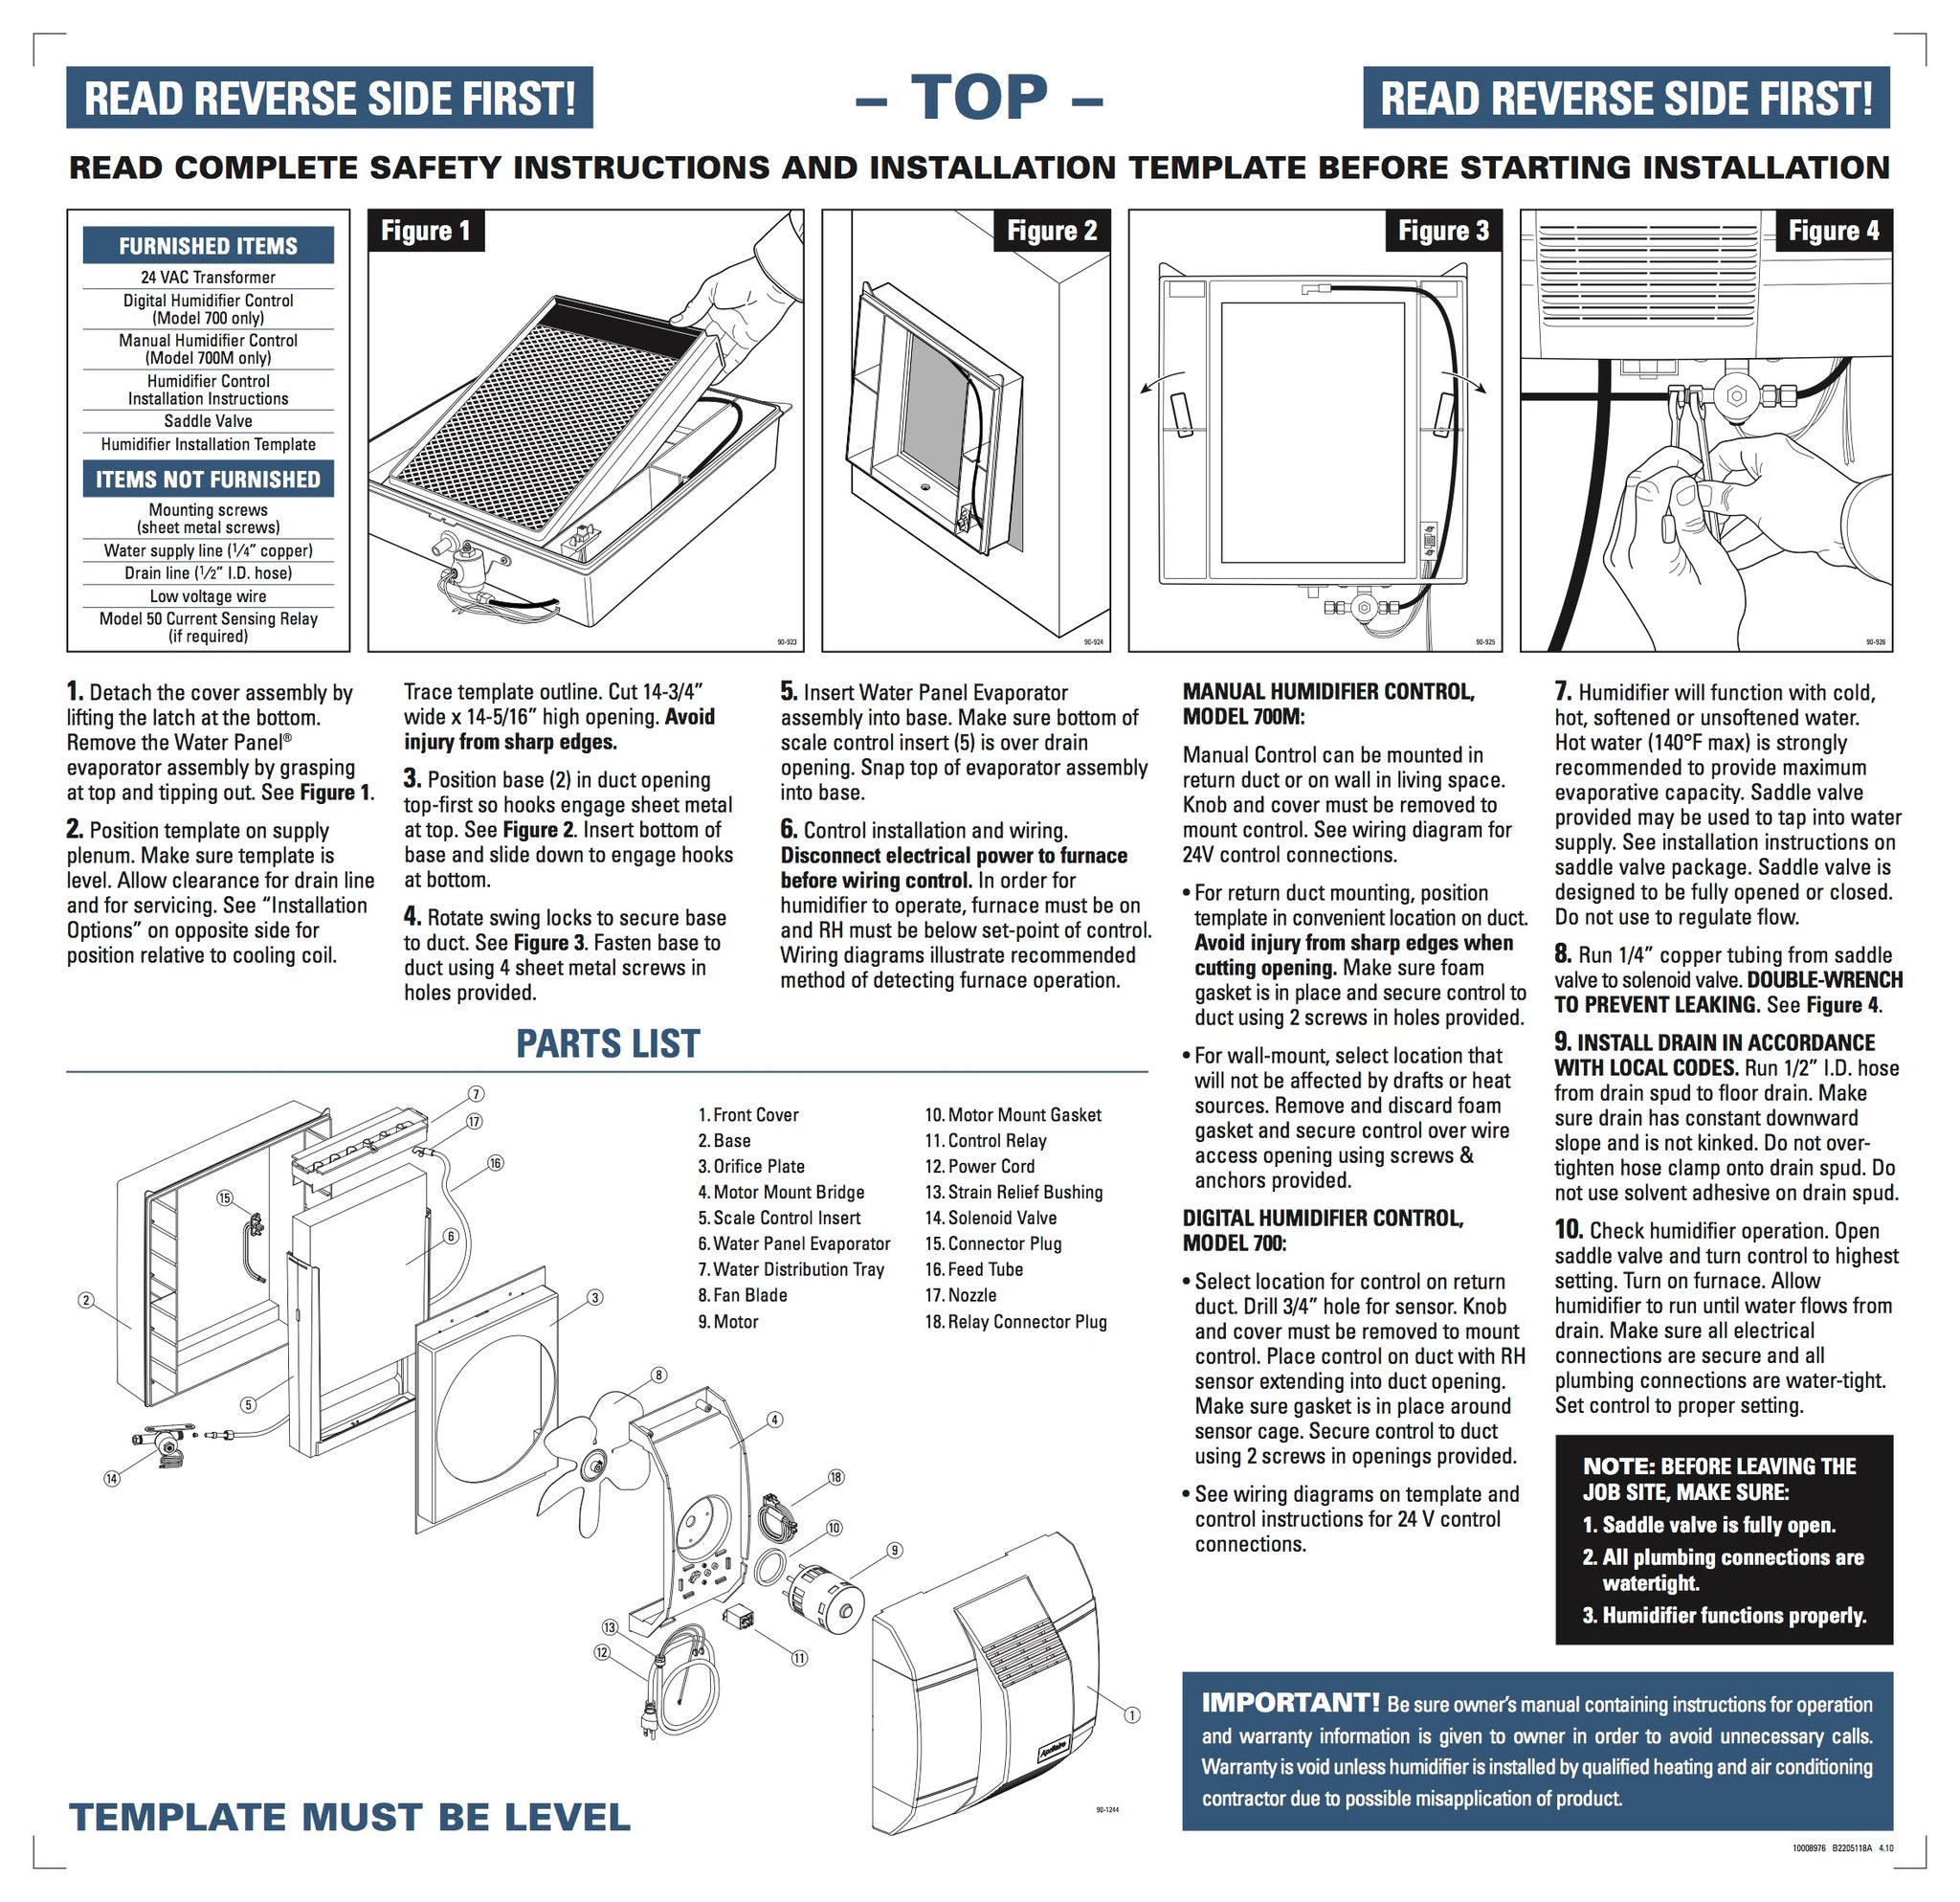 Trane Sv92 Furnace Humidifier Wiring Diagramsv Fan Coil Unit Diagram Aprilaire 700 Instructions Page 2 2048x2048v1474913351 Model To Diagrams Xb80